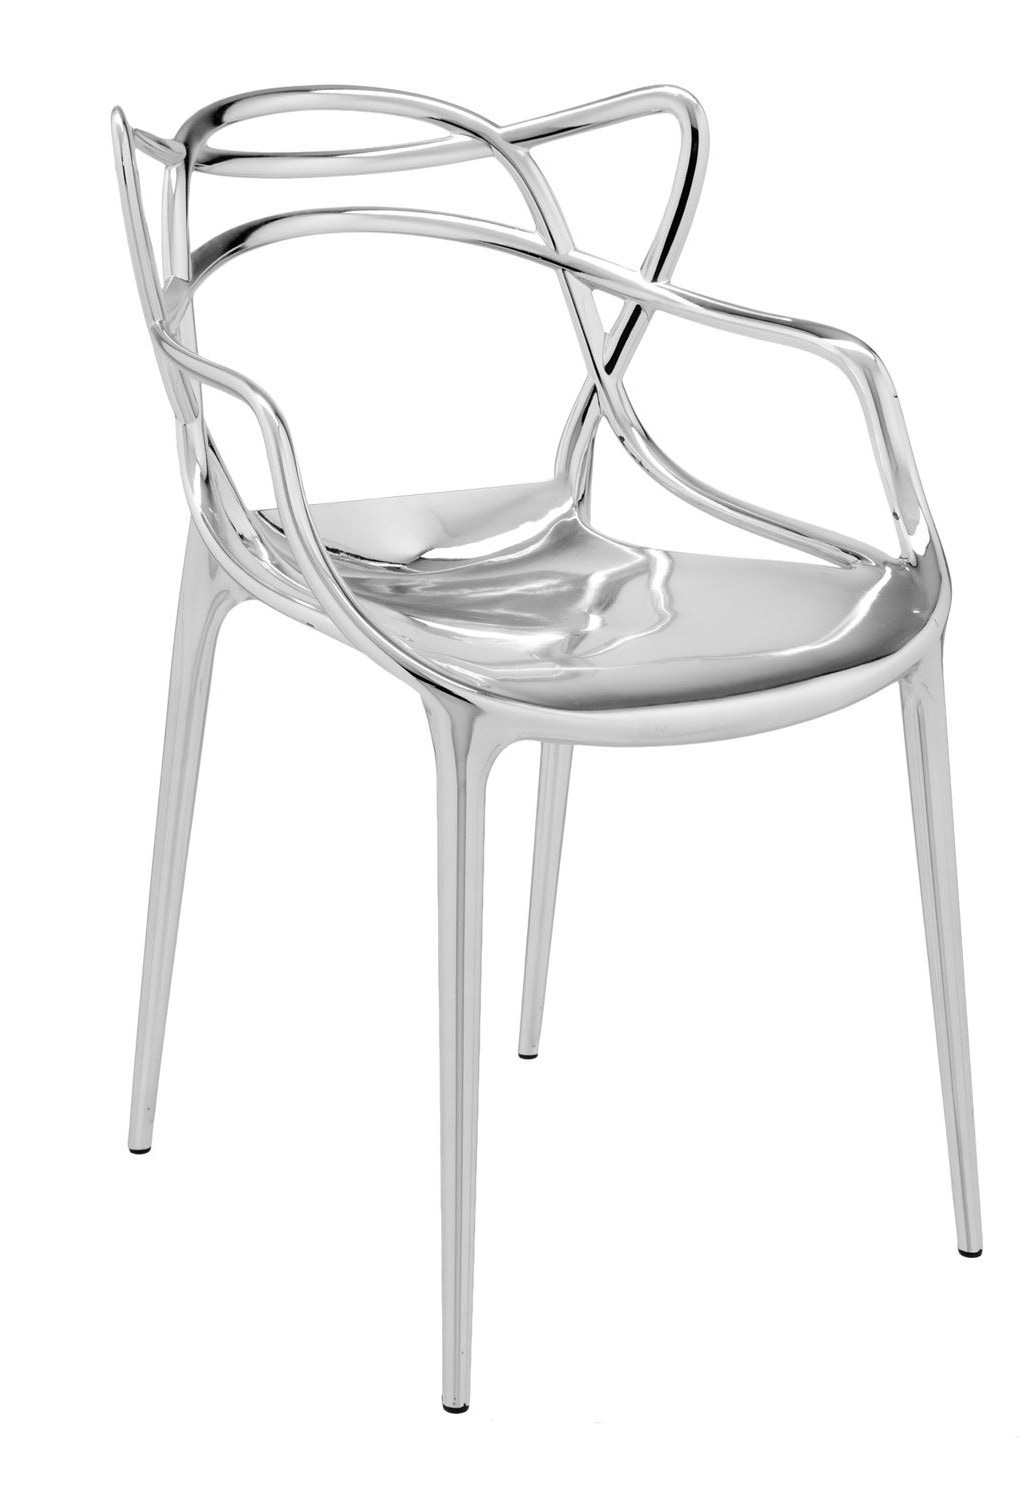 Kartell Masters Metallic Armchair (Priced Each, Sold in Sets of 2)